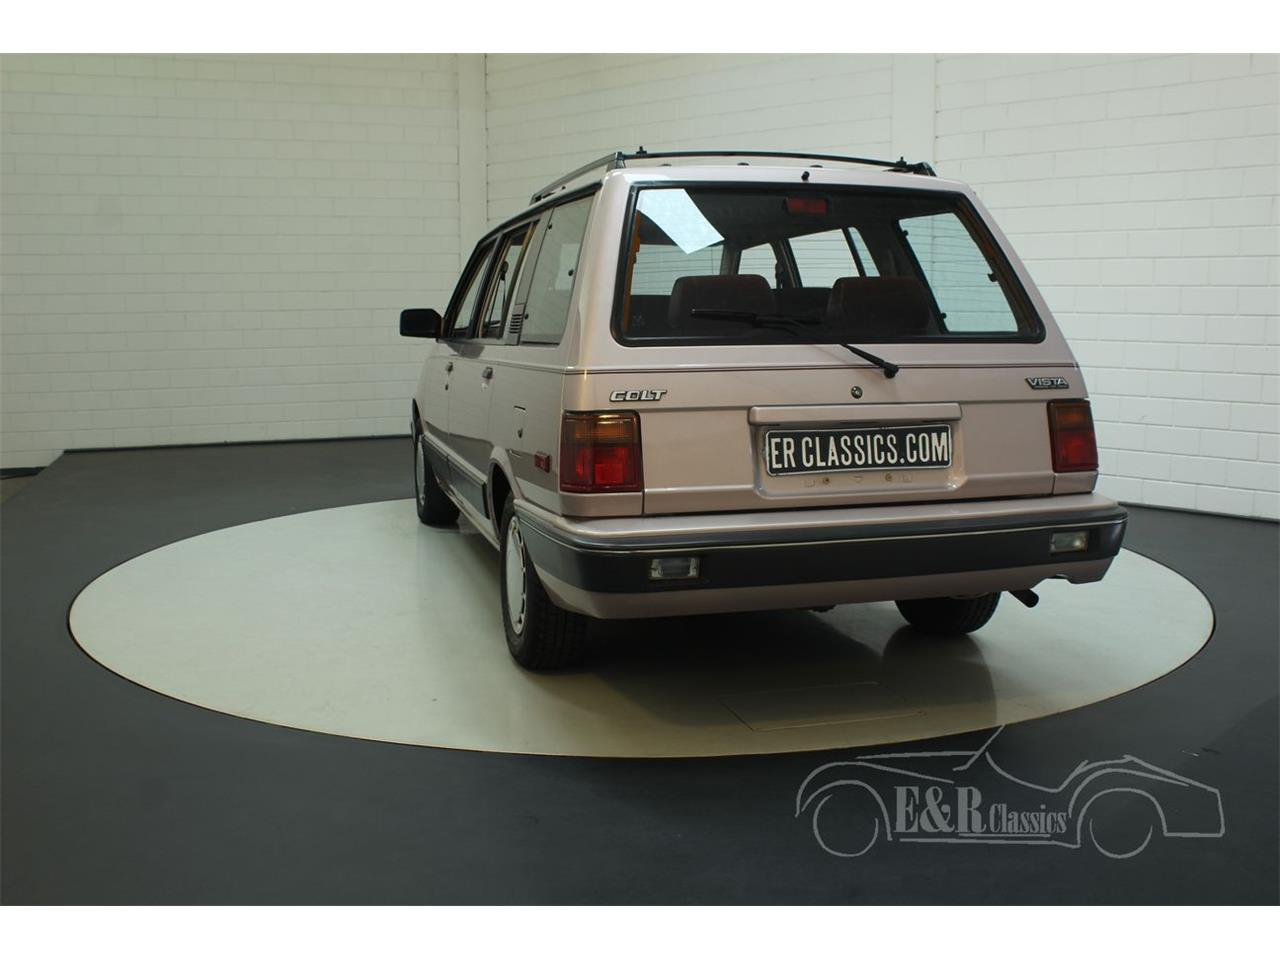 Large Picture of 1987 Colt located in [nl] Pays-Bas Offered by E & R Classics - PVV4